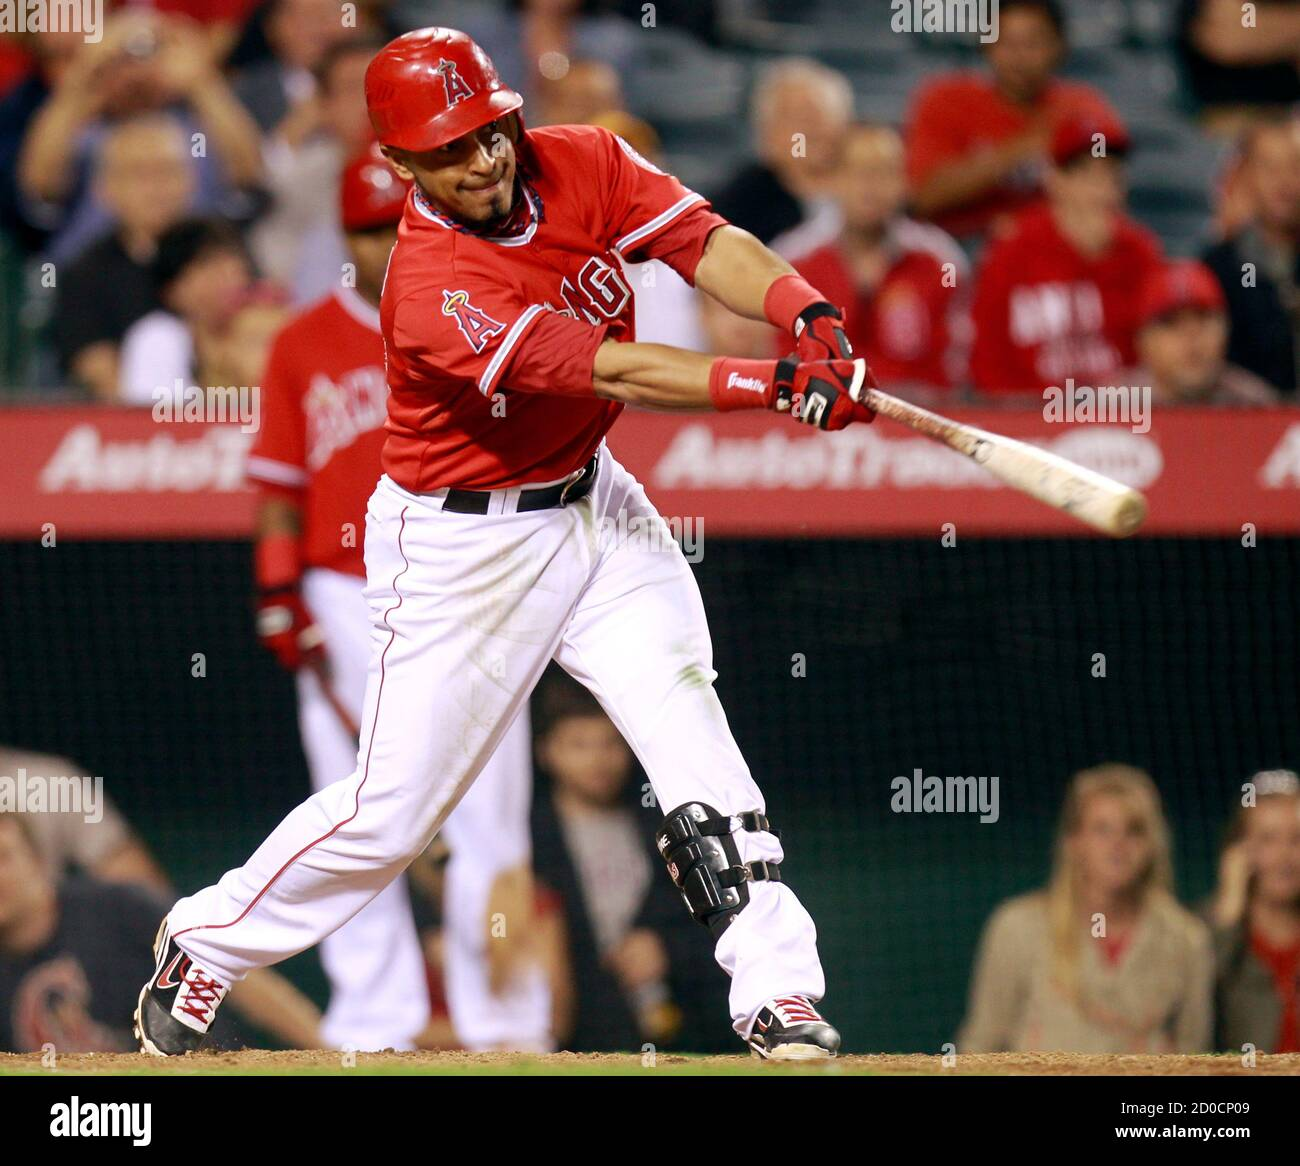 Los Angeles Angels Maicer Izturis hits the game-winning RBI single to score Alberto Callaspo against the Washington Nationals during the 10th inning of their MLB baseball game against the Los Angeles Angels in Anaheim, California June 27, 2011. REUTERS/Lucy Nicholson (UNITED STATES - Tags: SPORT BASEBALL) Banque D'Images